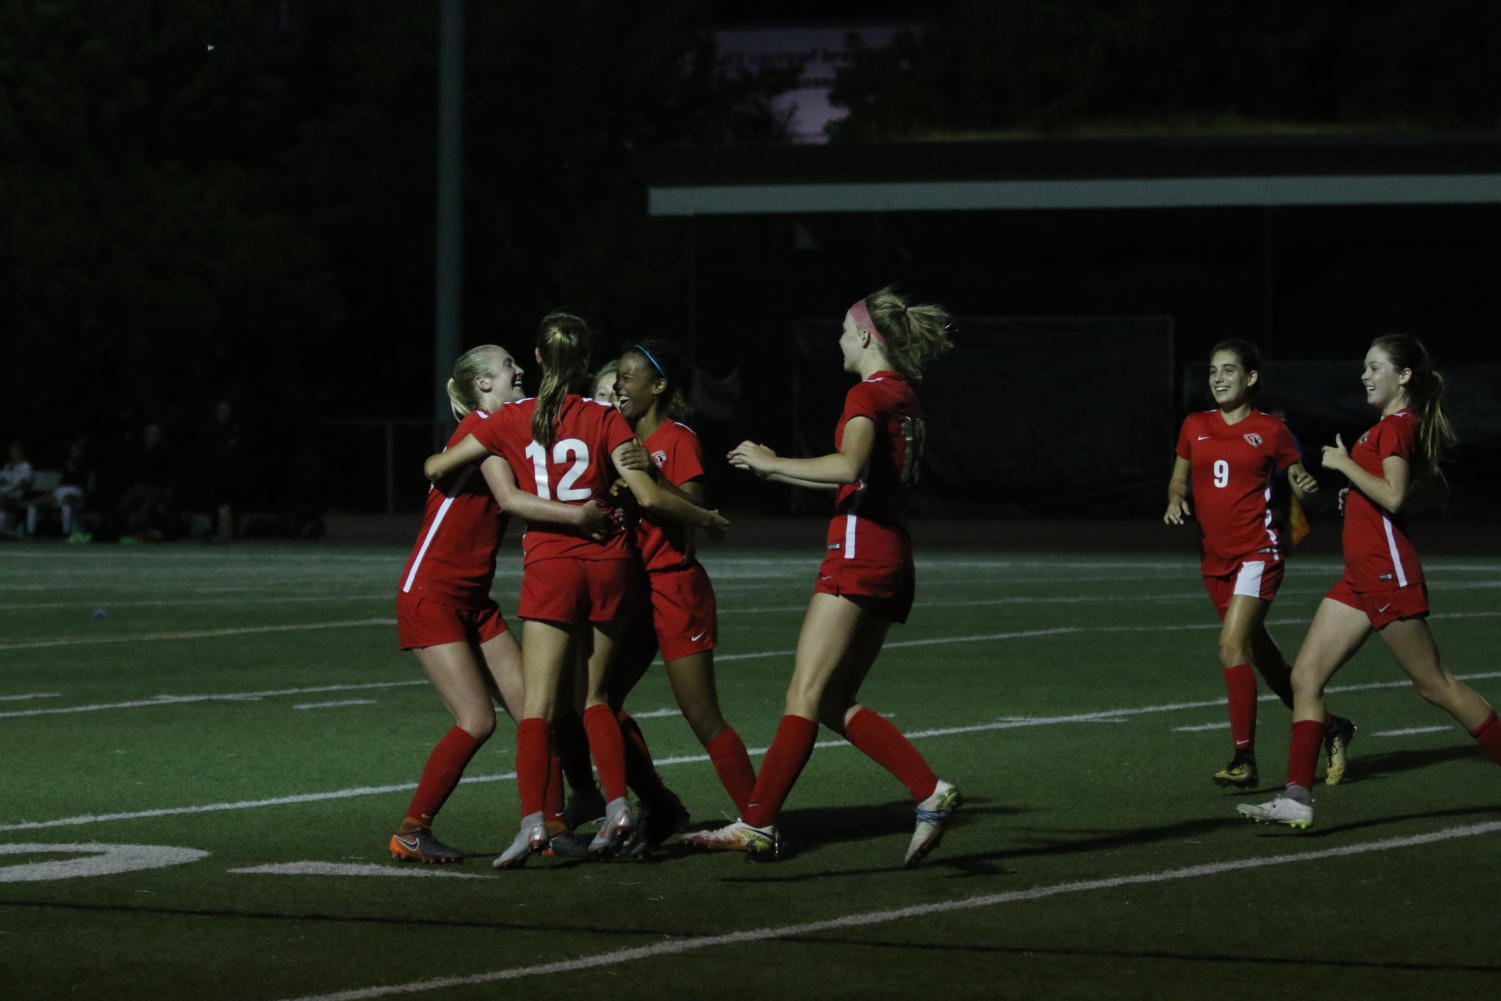 Girls varsity soccer team celebrates sophomore Jolie Maycumber's (number 12) game winning goal against South Eugene on Aug. 30 2018.